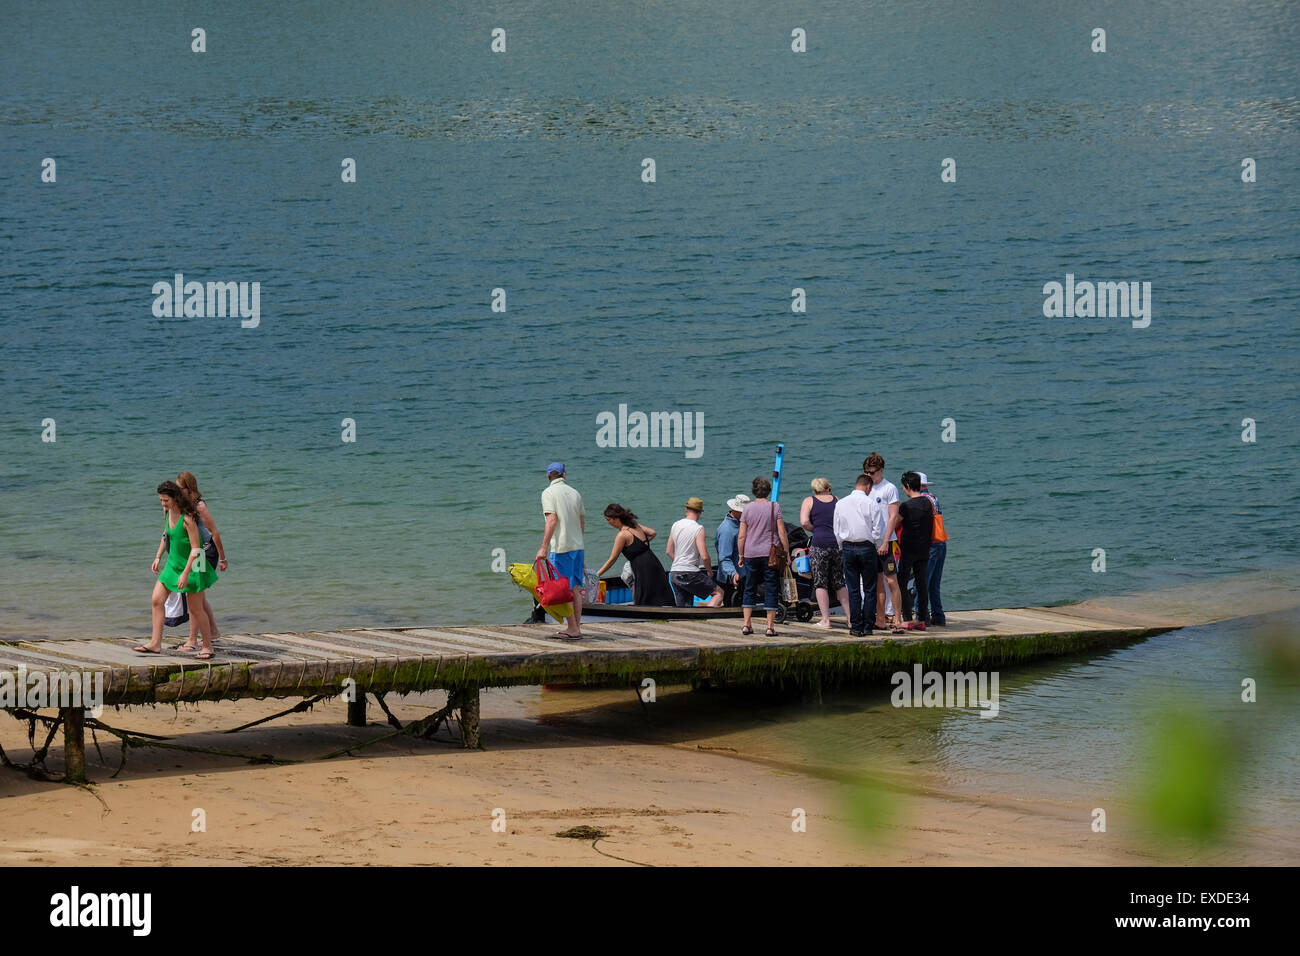 Salcombe, Devon, UK. The Ferry runs to and from the beaches at East Portlemouth from Salcombe - Stock Image